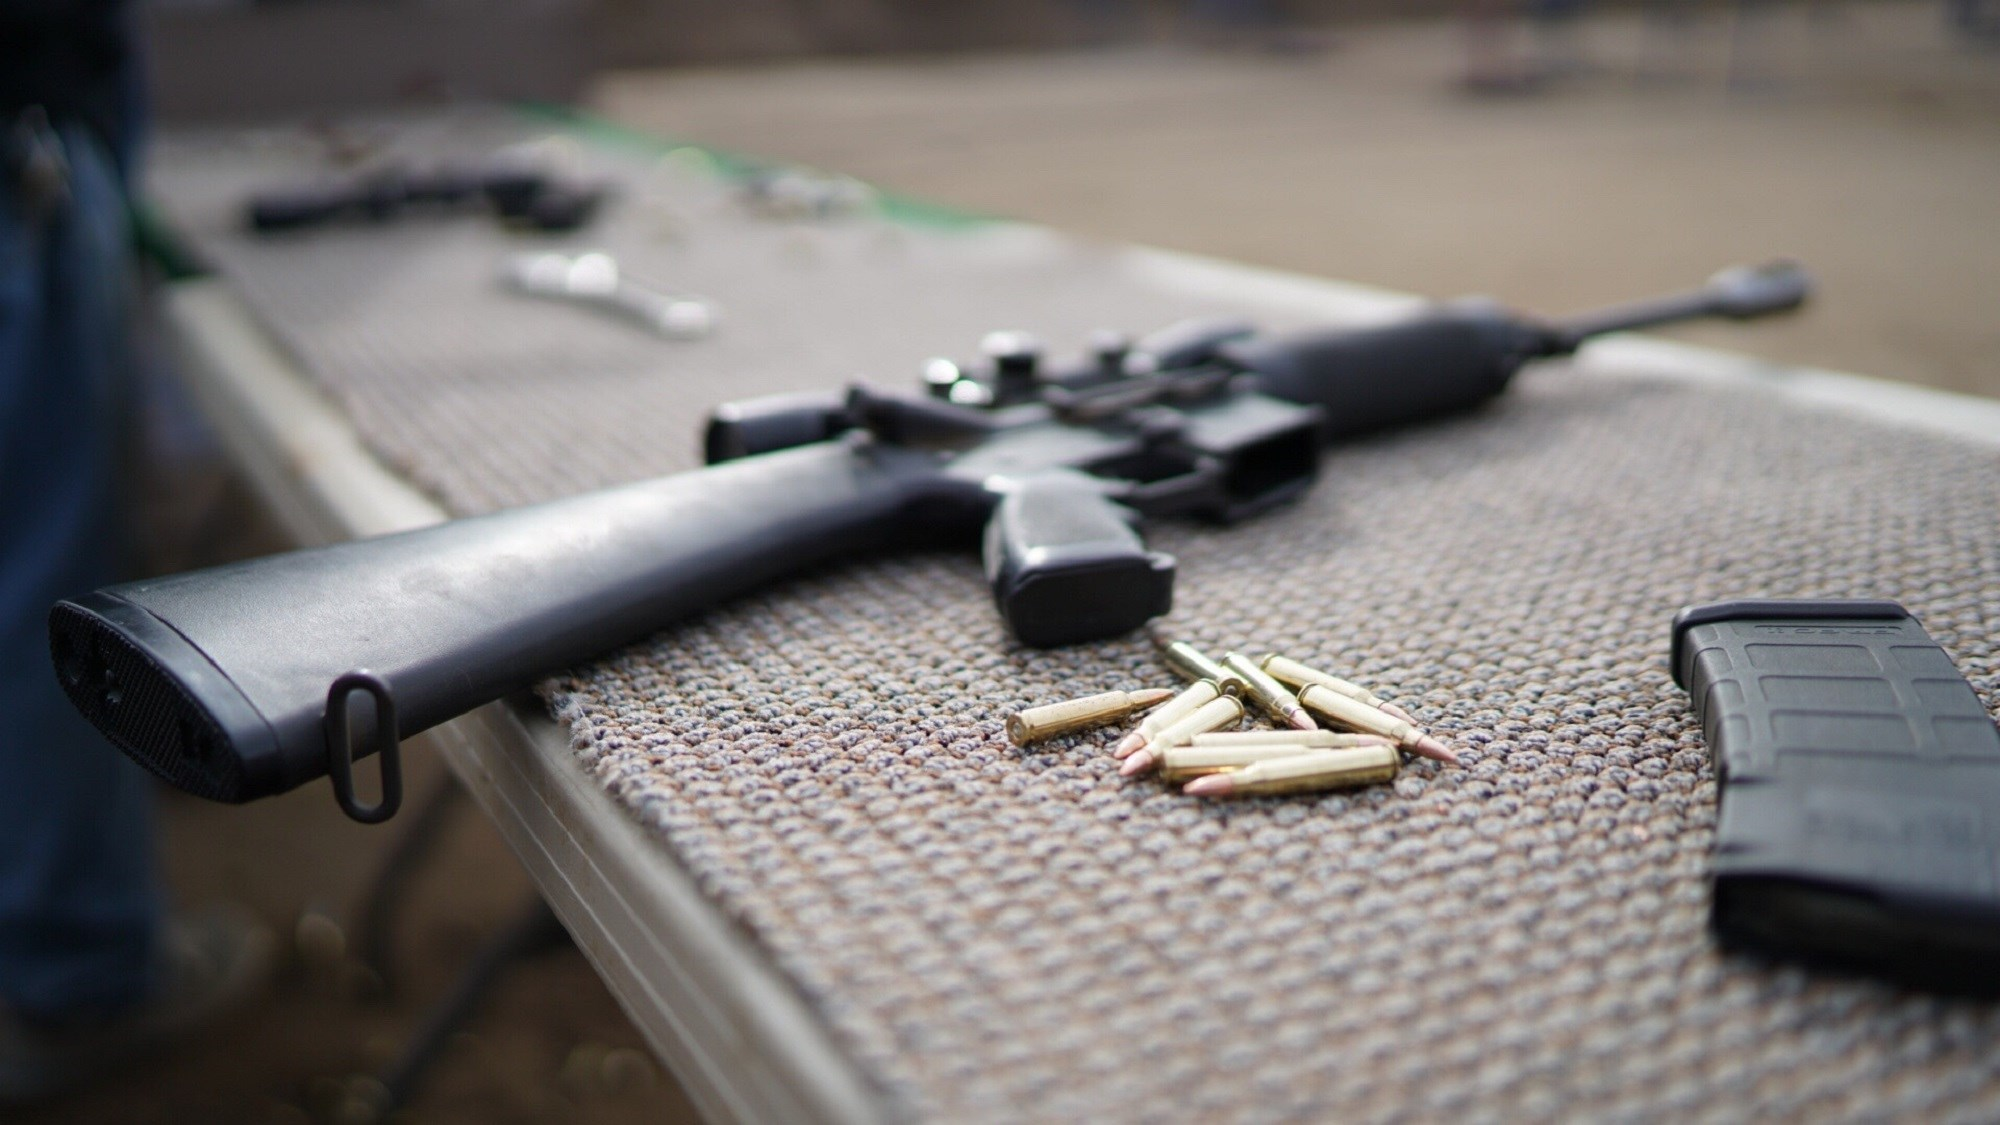 Odds of Death Up With Medium, Large-Caliber Firearms